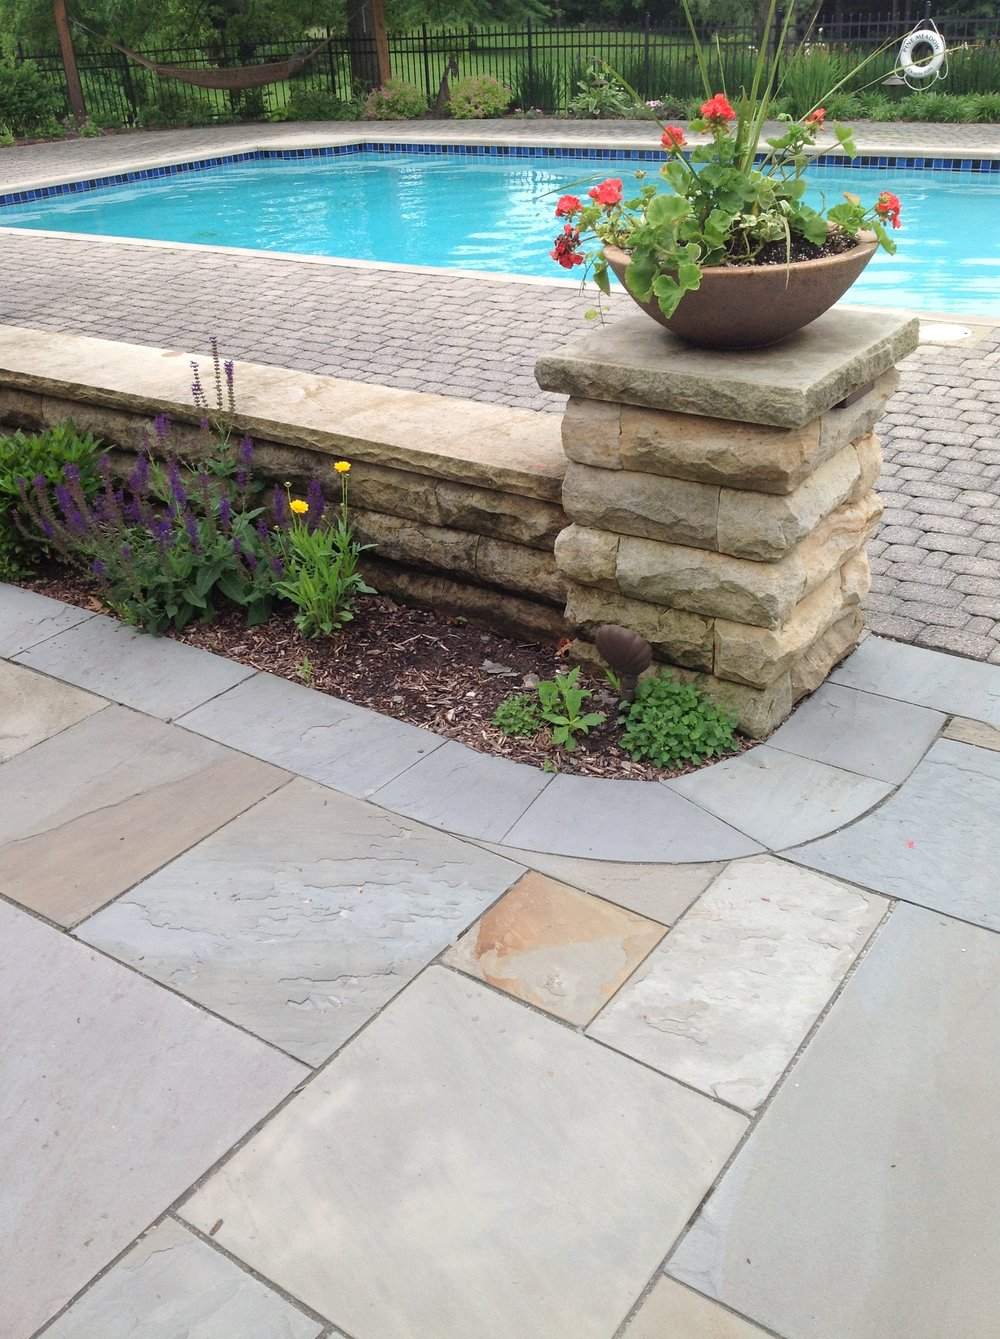 Unilock landscaping companies with top patio pavers and retaining wall in Bainbridge Township, Ohio